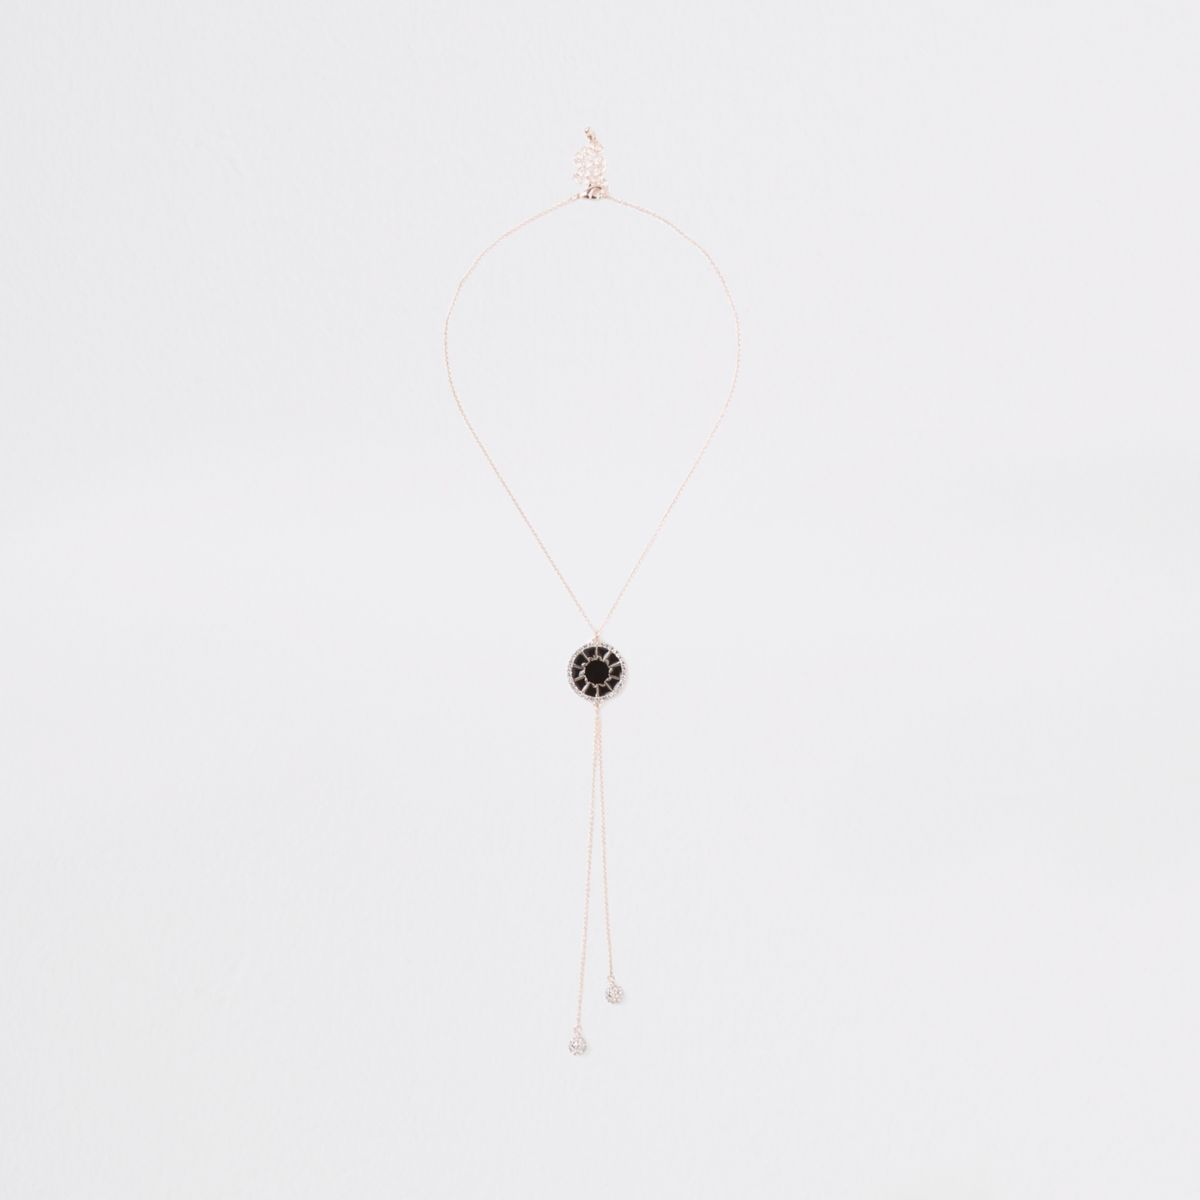 Rose gold black enamel circle necklace